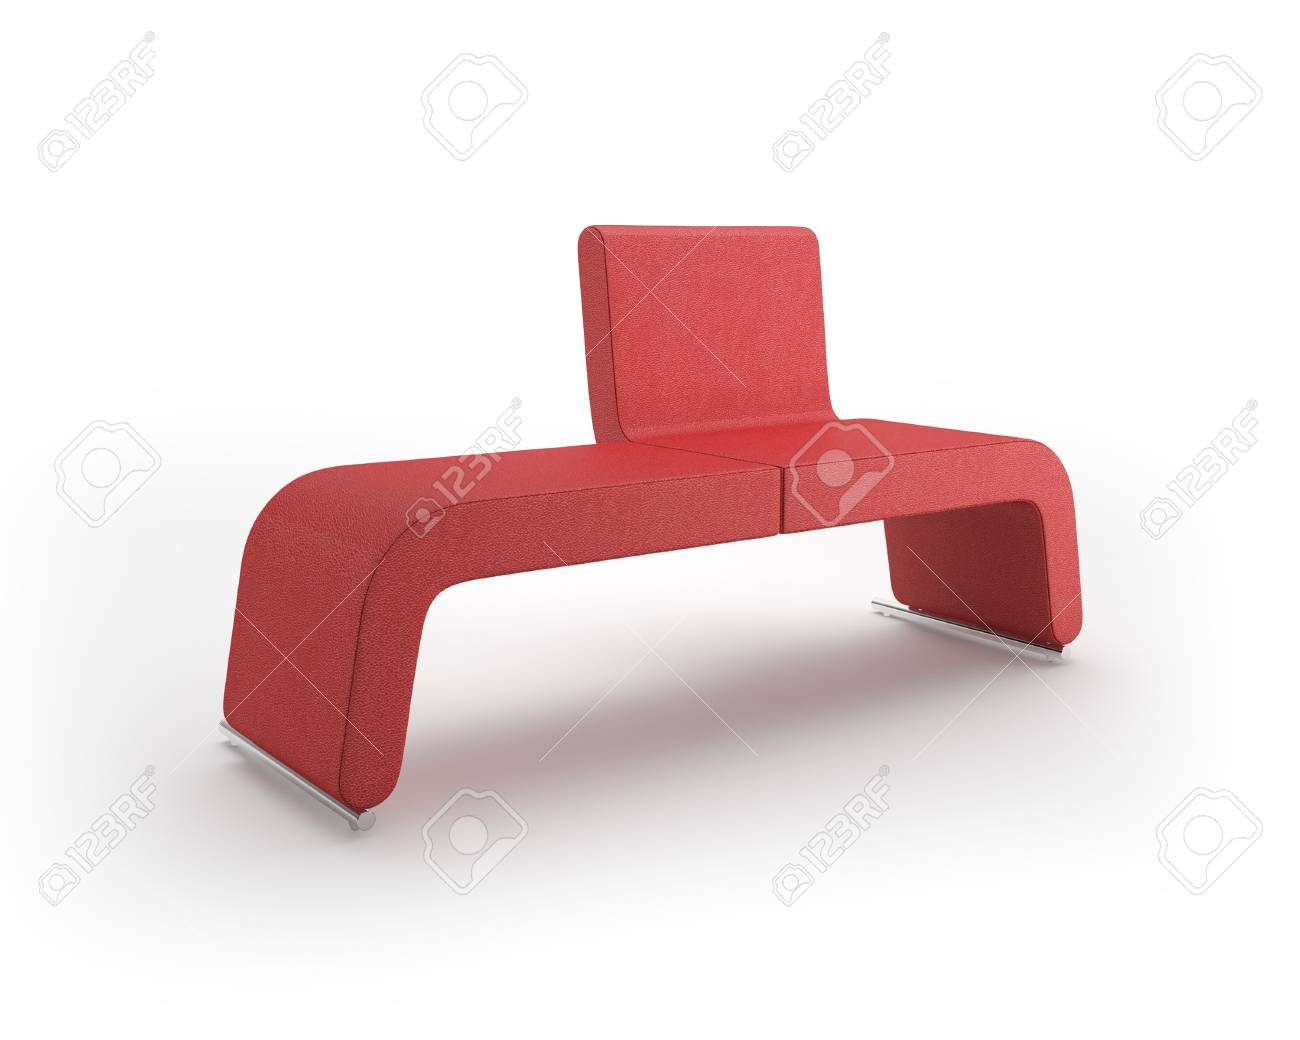 Modern Leather Bench on White Background Stock Photo - 9937128